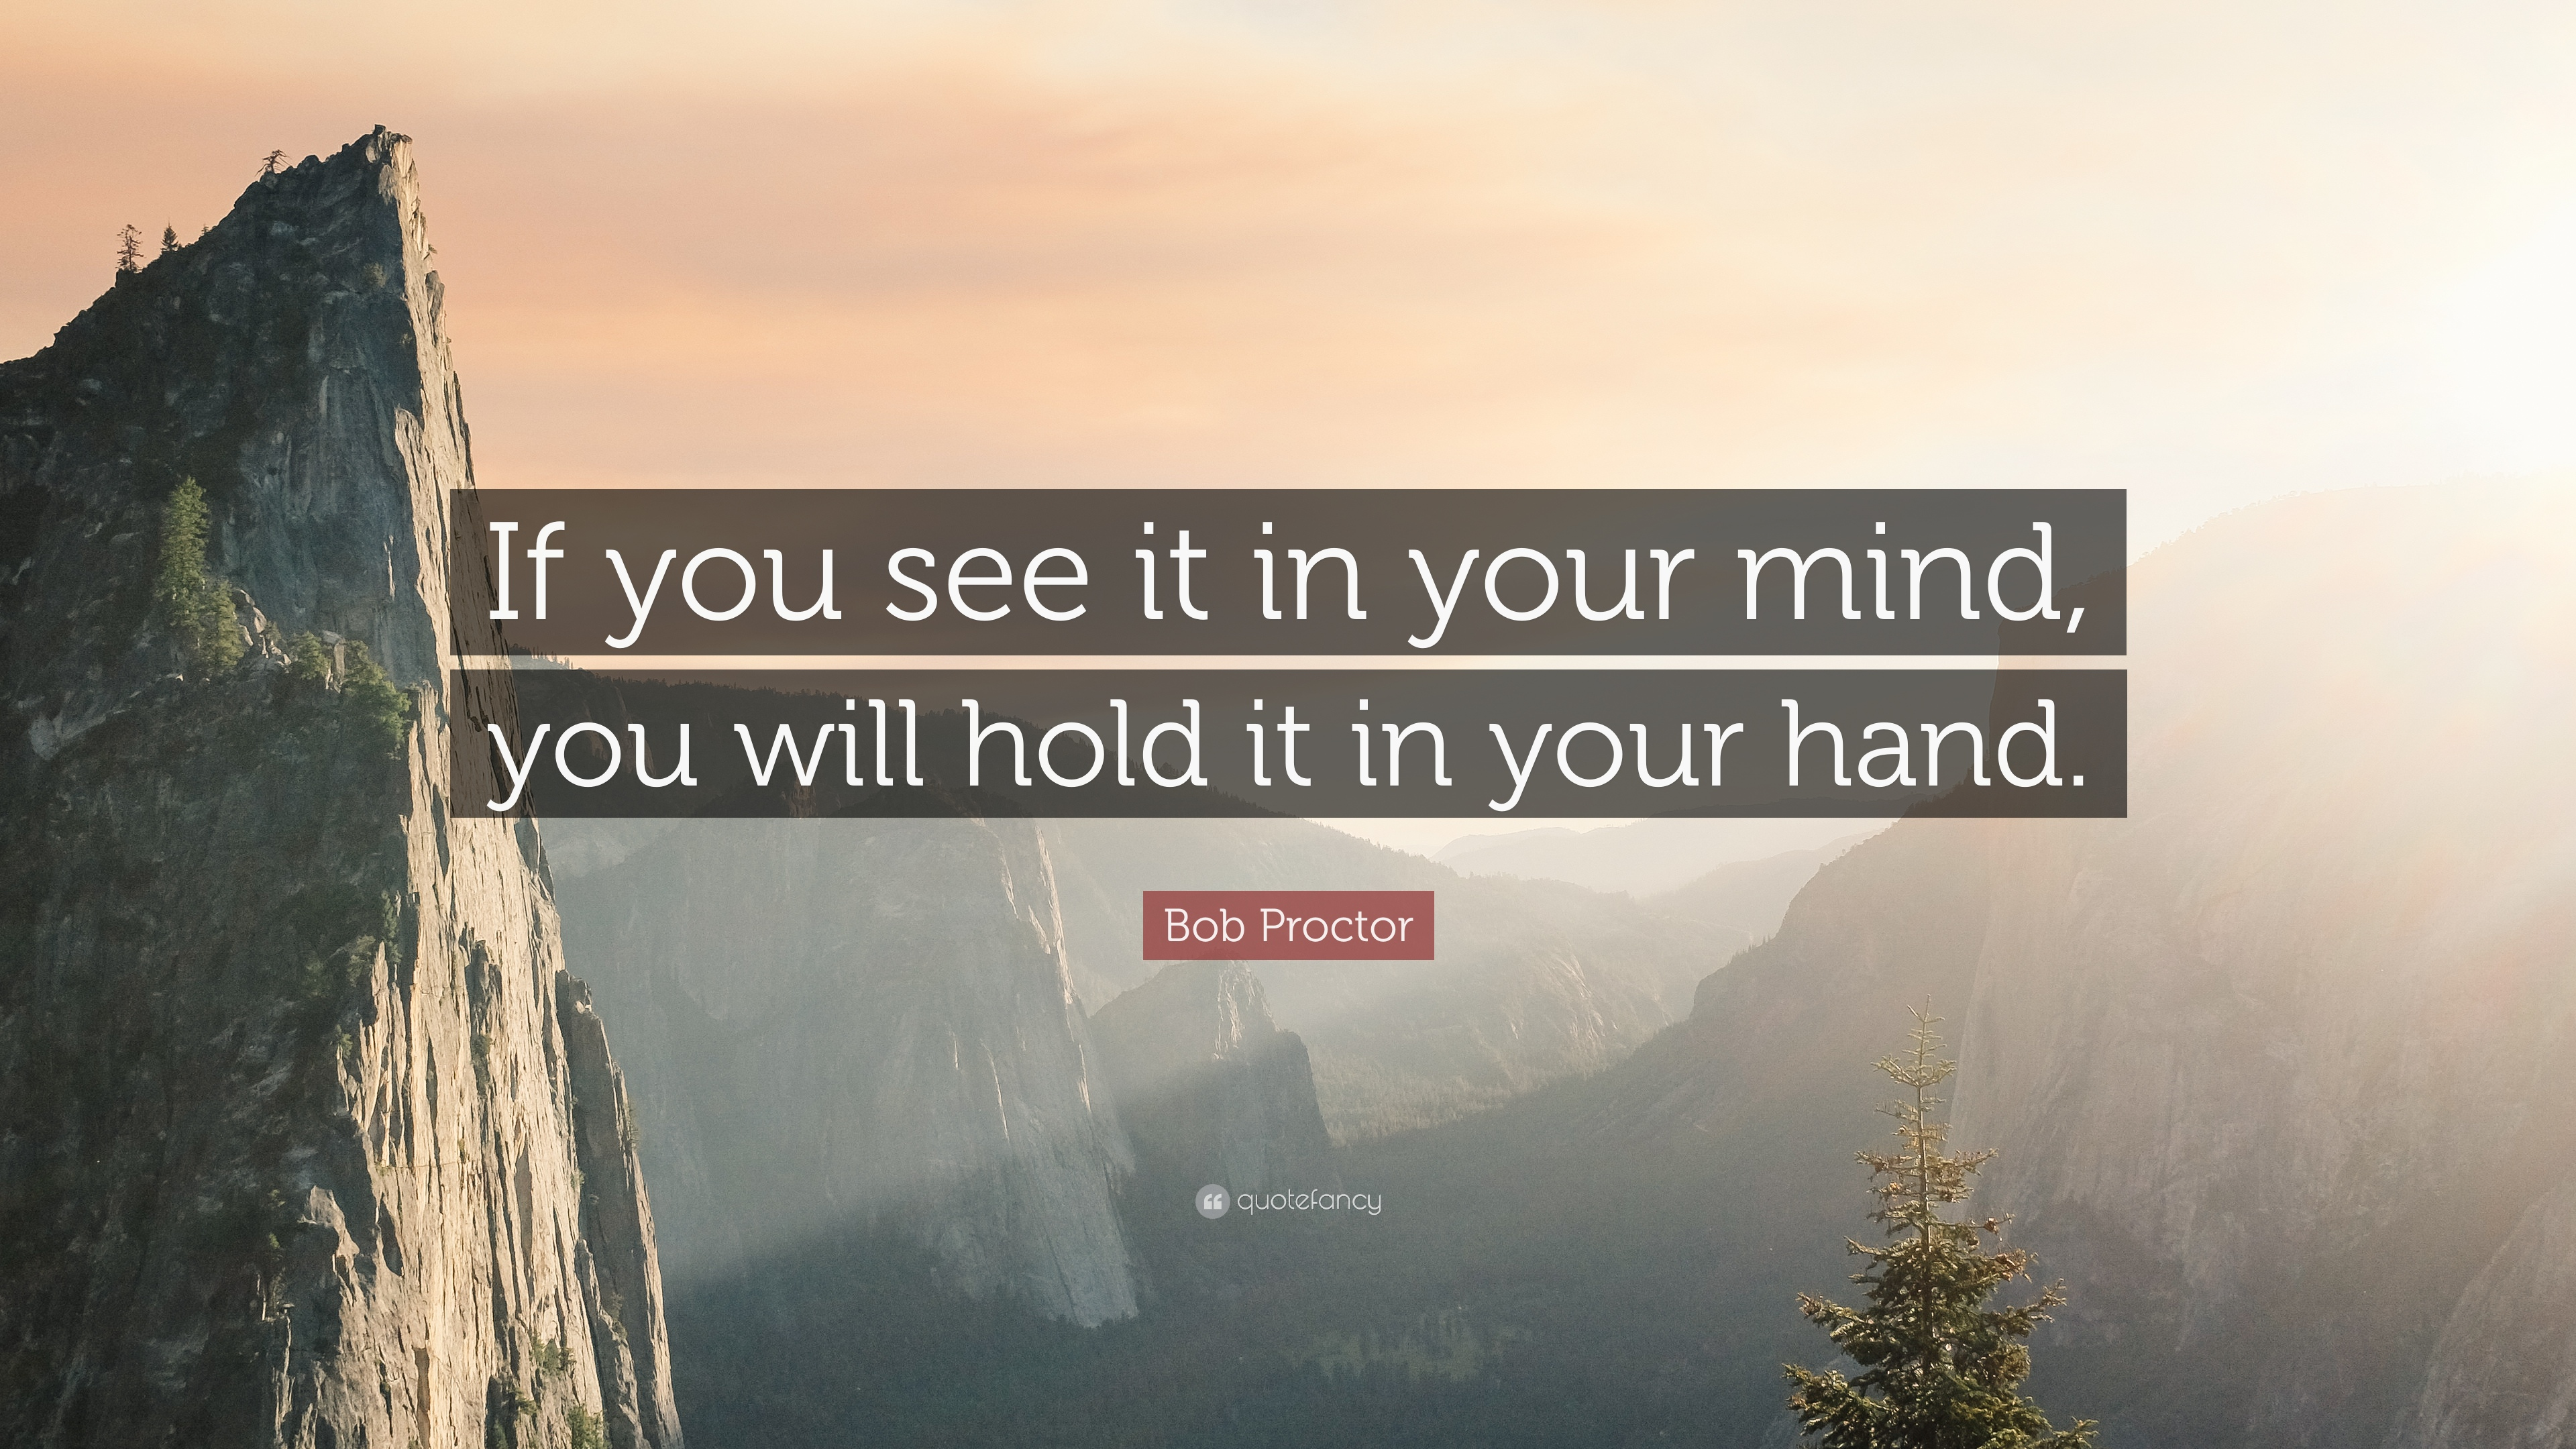 bob proctor quote if you see it in your mind you will hold it in your hand 12 wallpapers. Black Bedroom Furniture Sets. Home Design Ideas